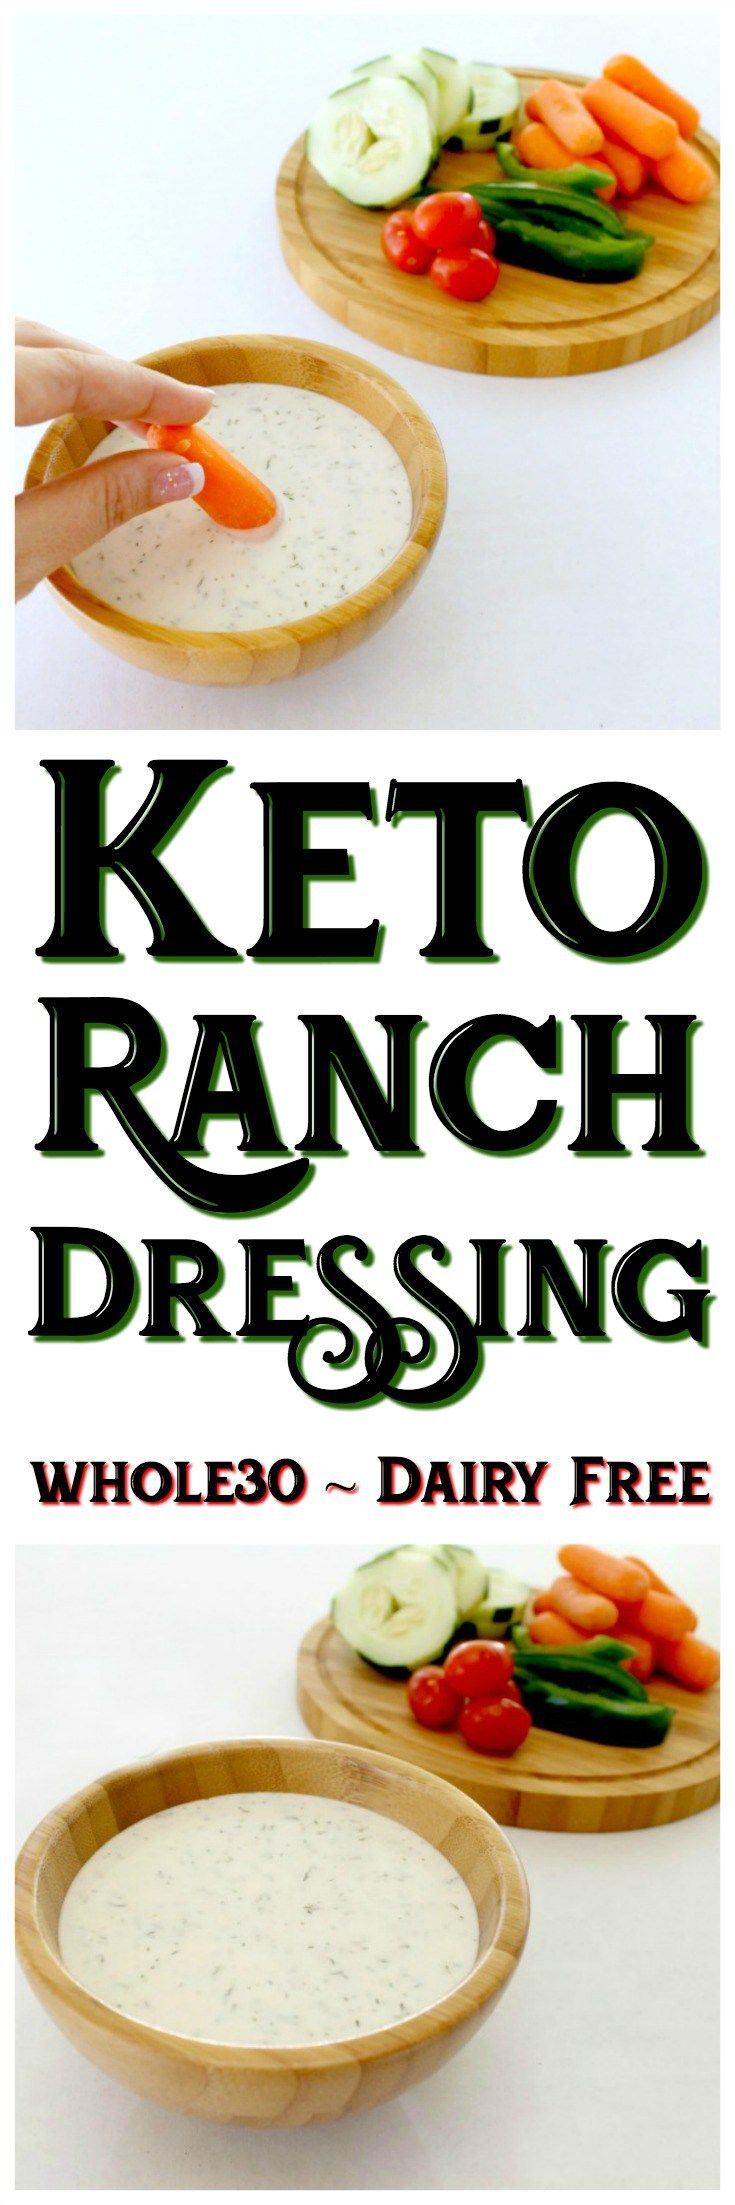 This Whole30 Compliant Ranch Dressing is Keto Friendly too! Simple ingredients and delicious flavor!